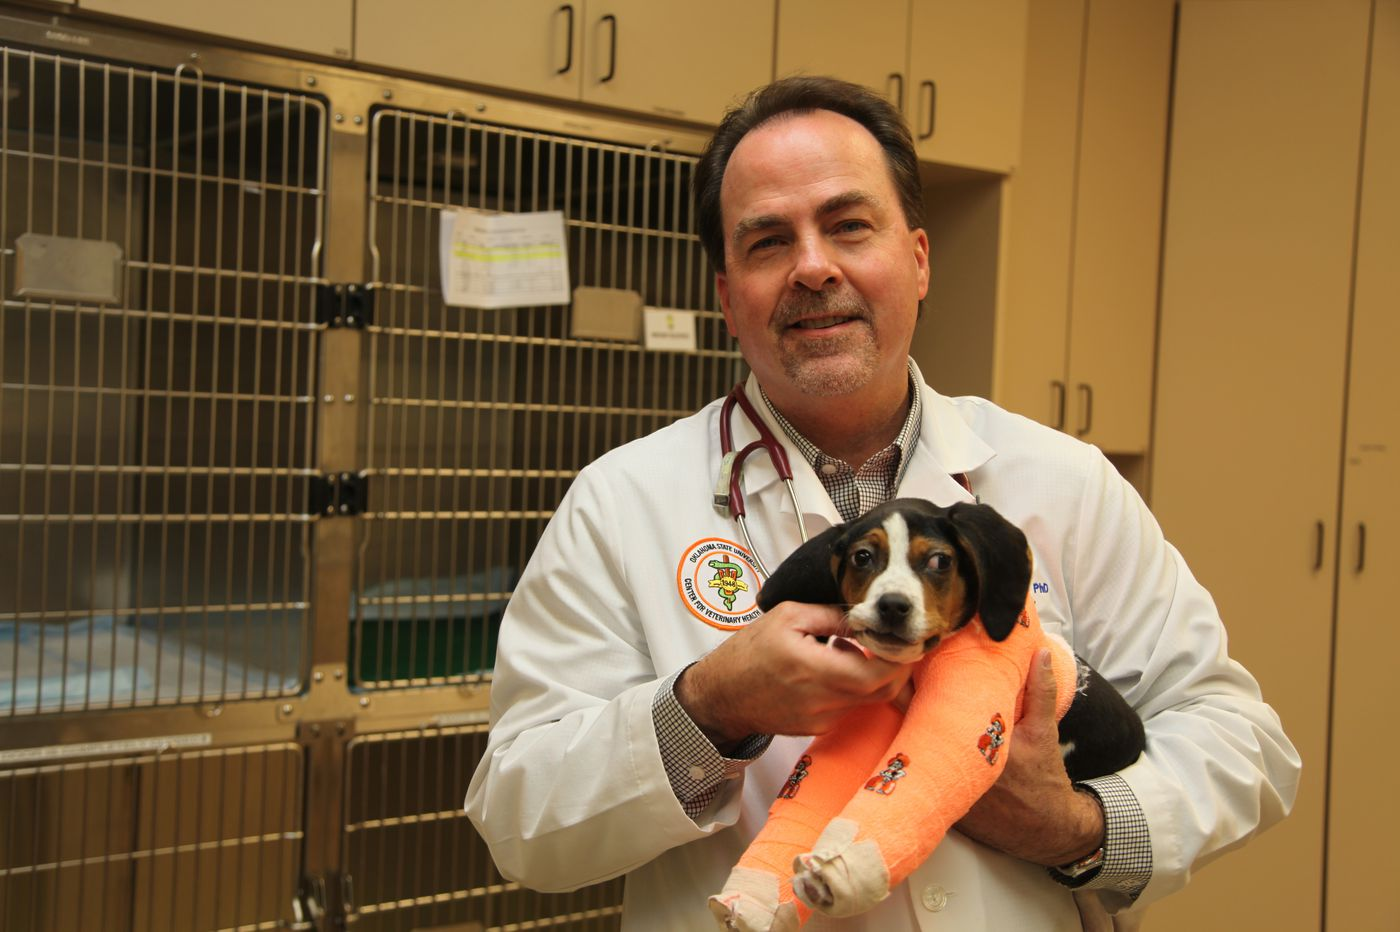 Veterinarians fix puppy paws pointing up instead of down